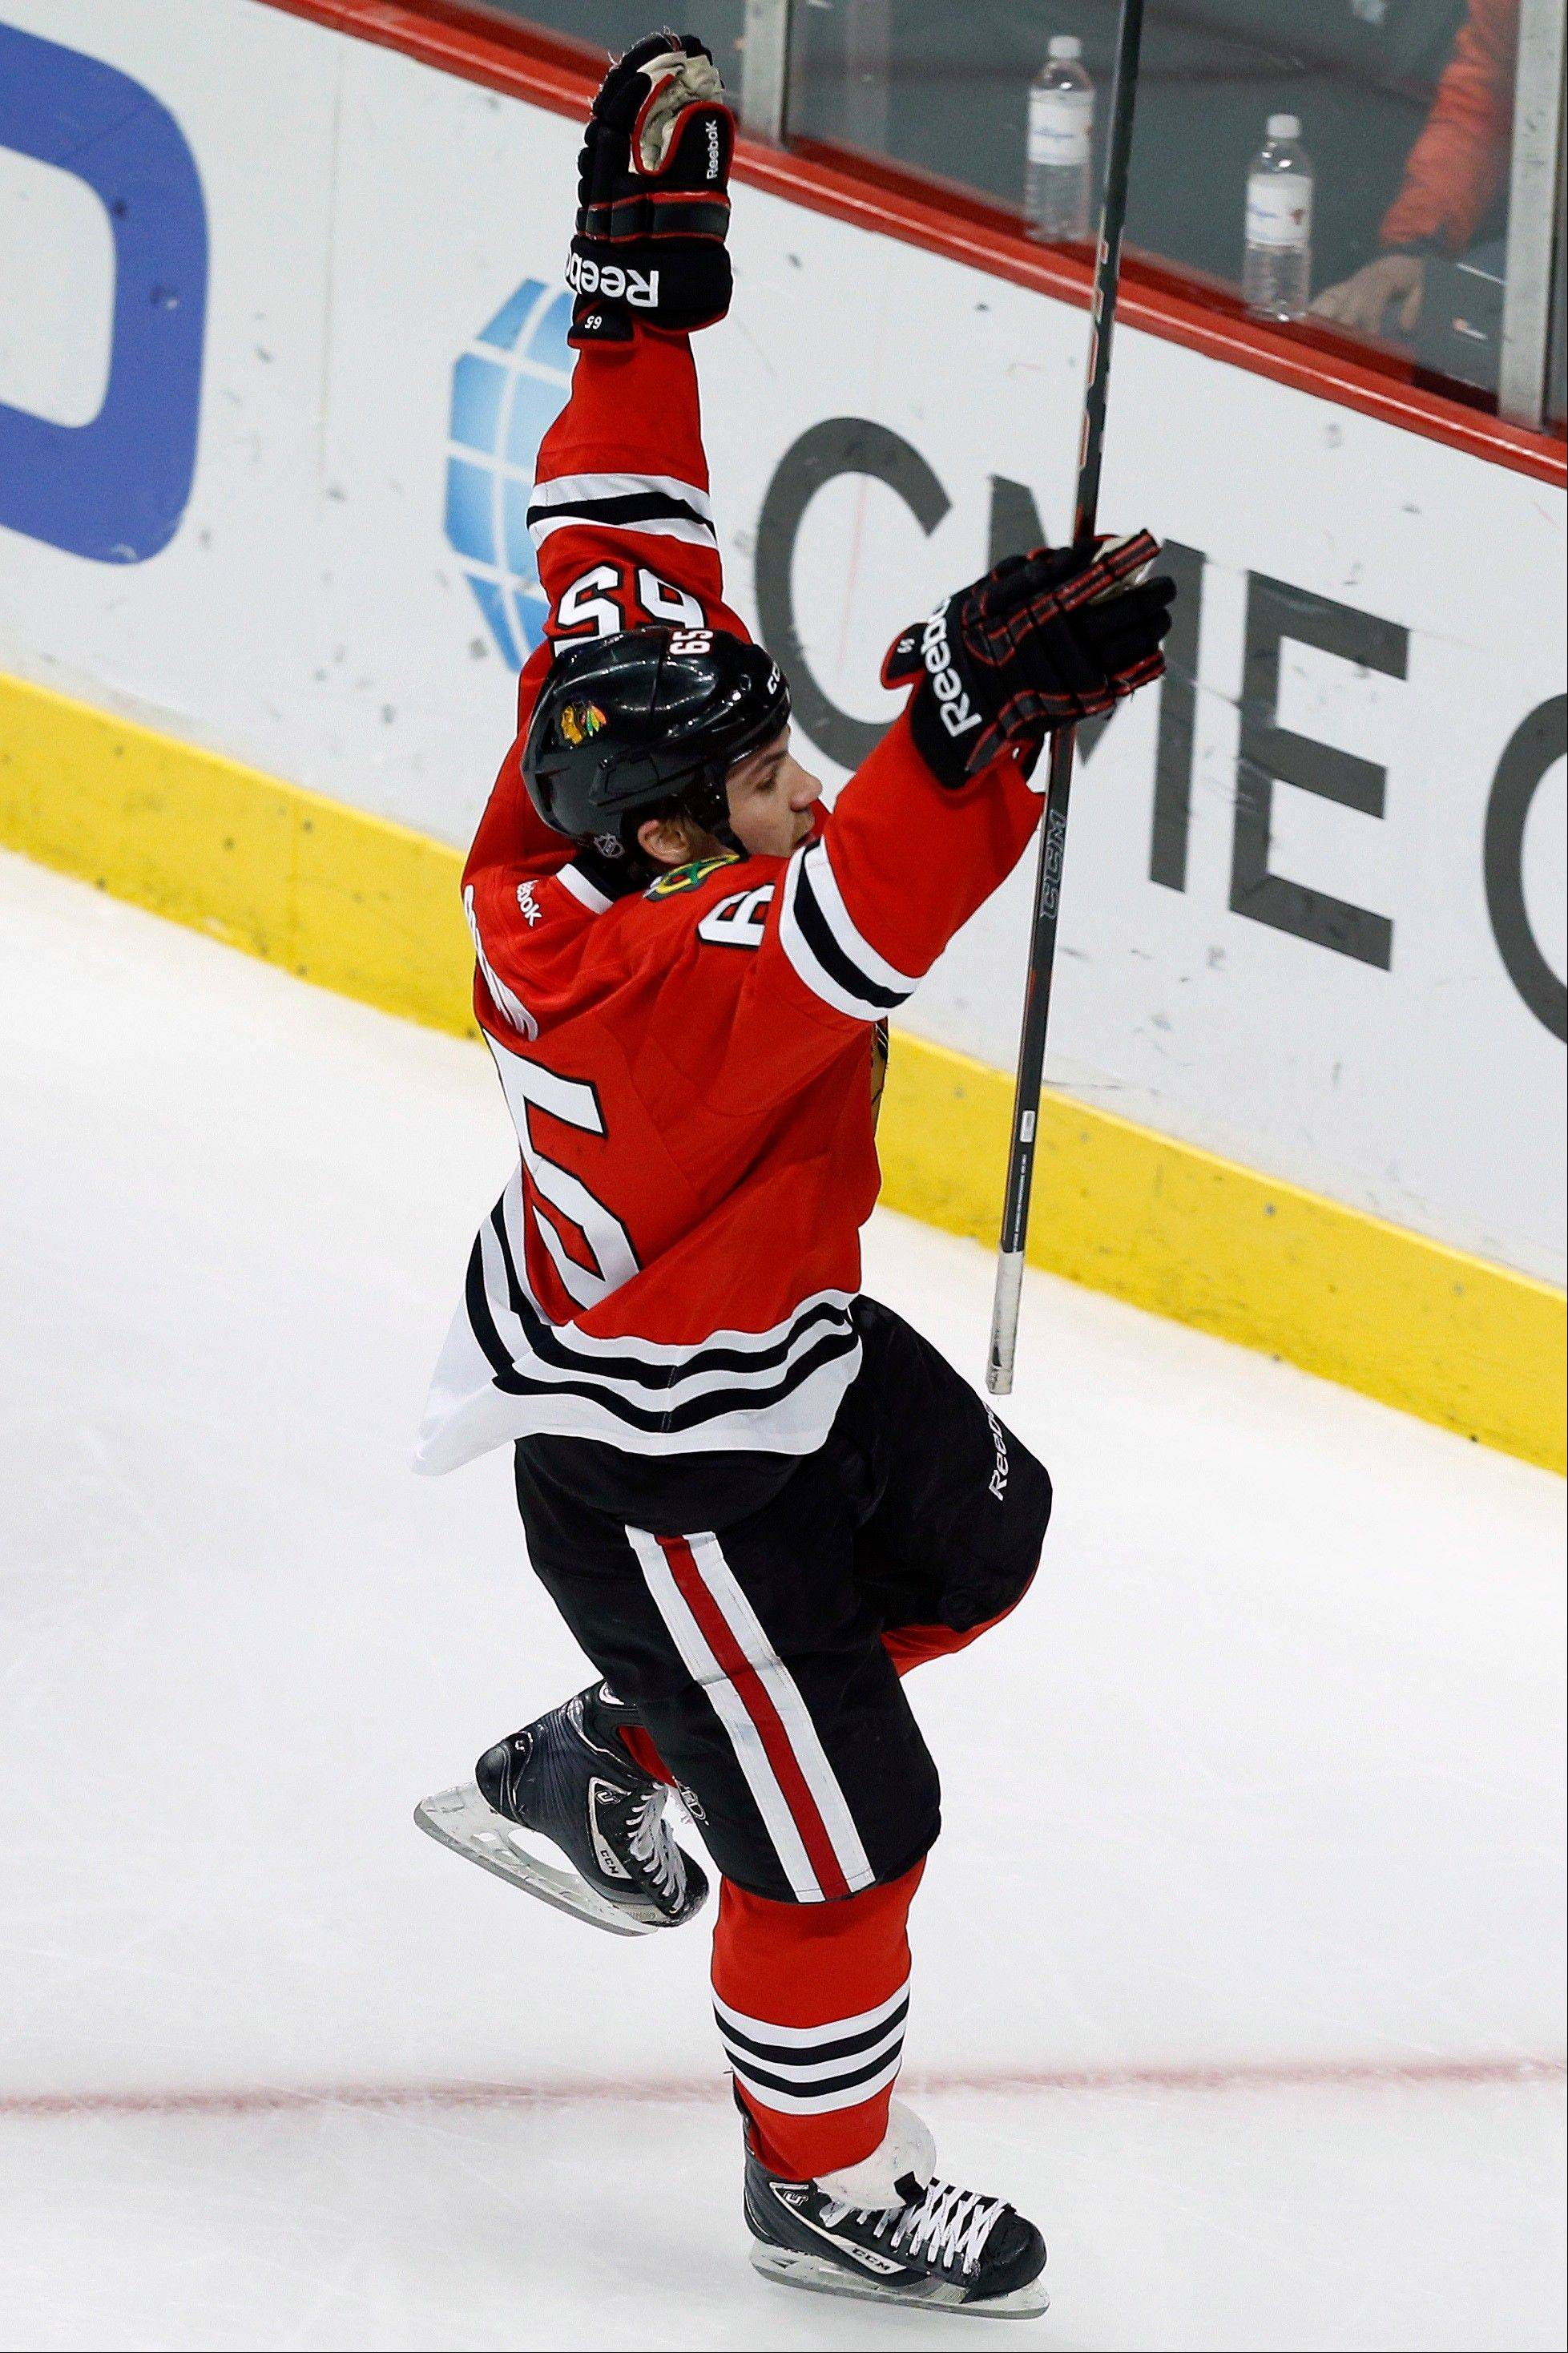 The Hawks� Andrew Shaw celebrates after beating Oilers goalie Devan Dubnyk in the second period Sunday at the United Center.